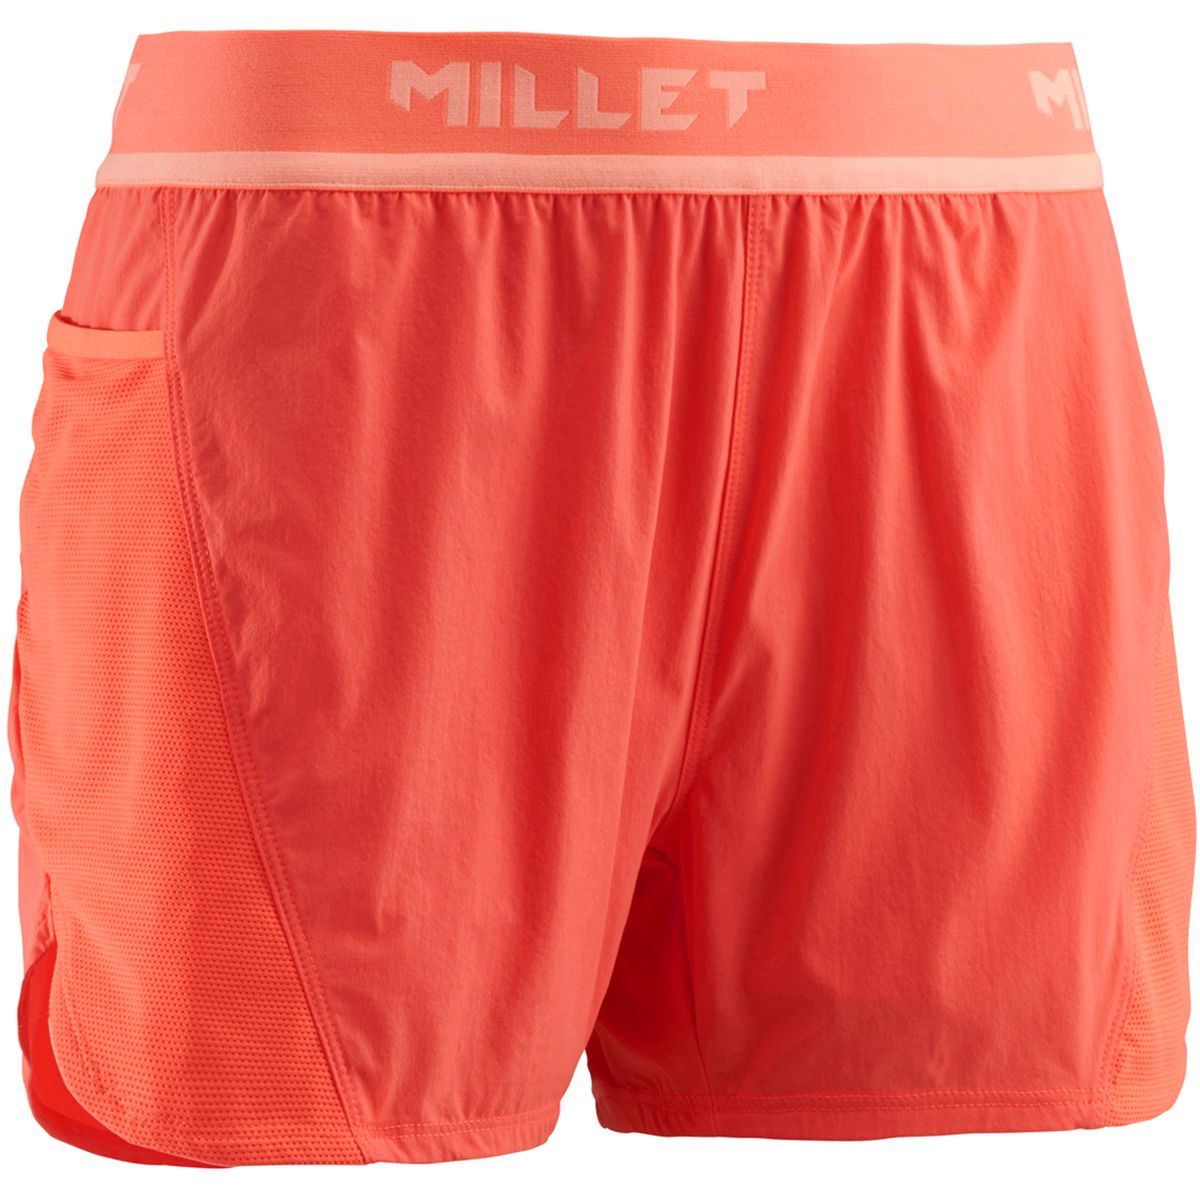 Millet Damen Ld Ltk Intense Shorts (Größe M, Orange) | Laufhosen > Damen